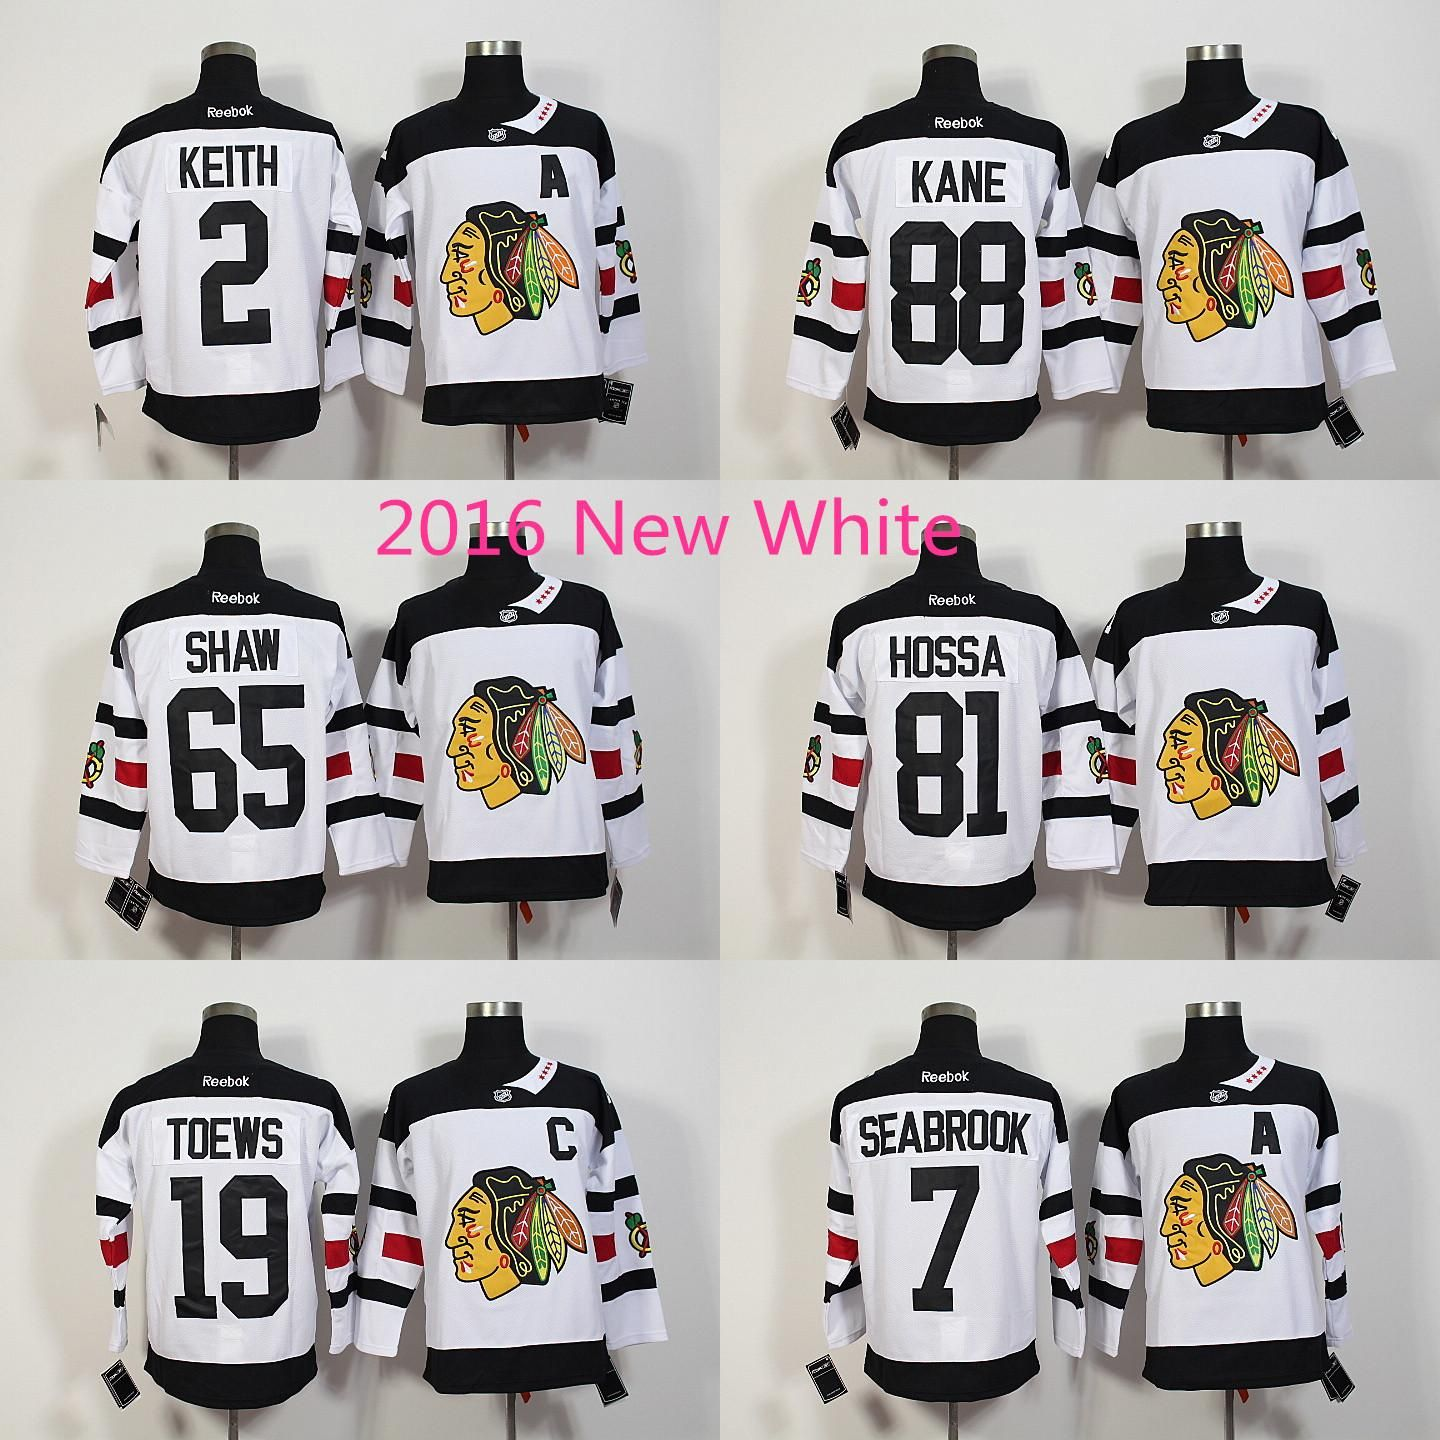 watch c89da ad2a8 seoProductName   sports caps and jerseys   Blackhawks ...